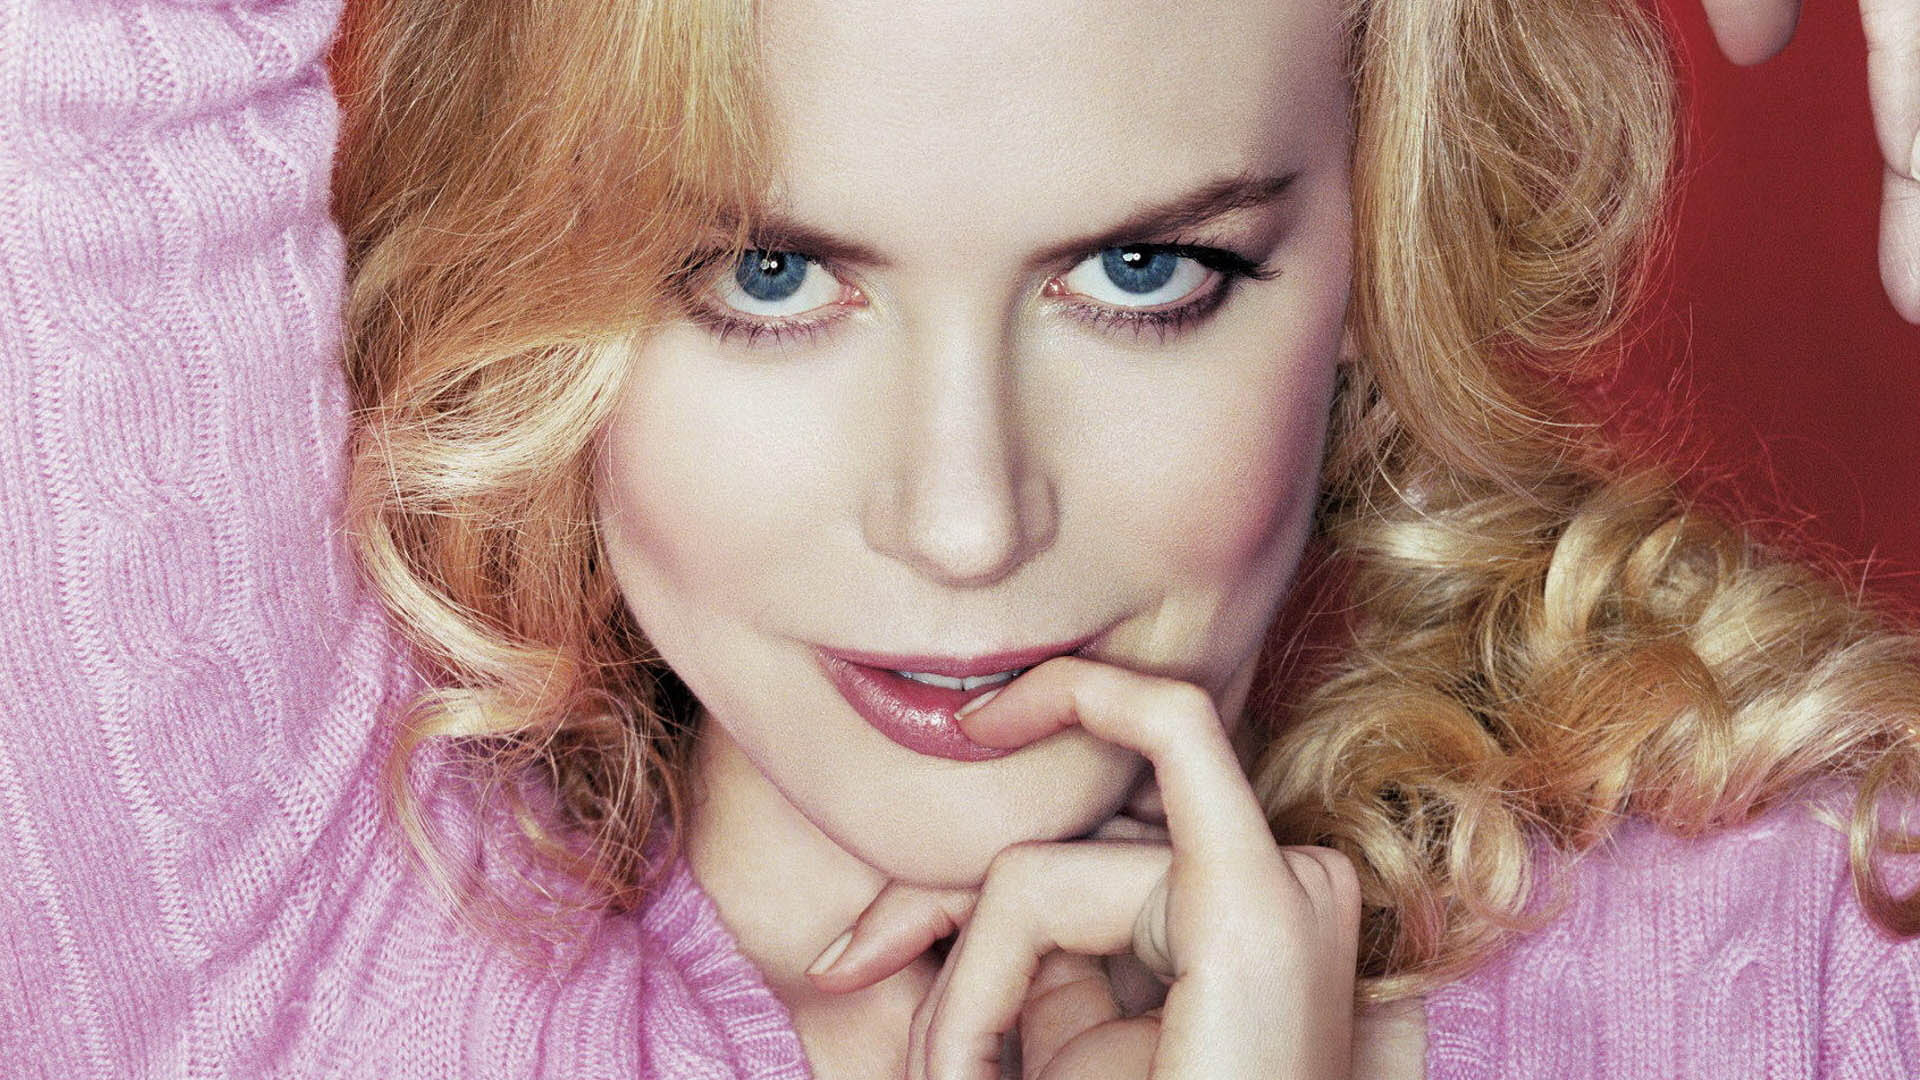 Nicole Kidman 129 wallpaper - Nicole Kidman - Celebrities | Girls ...